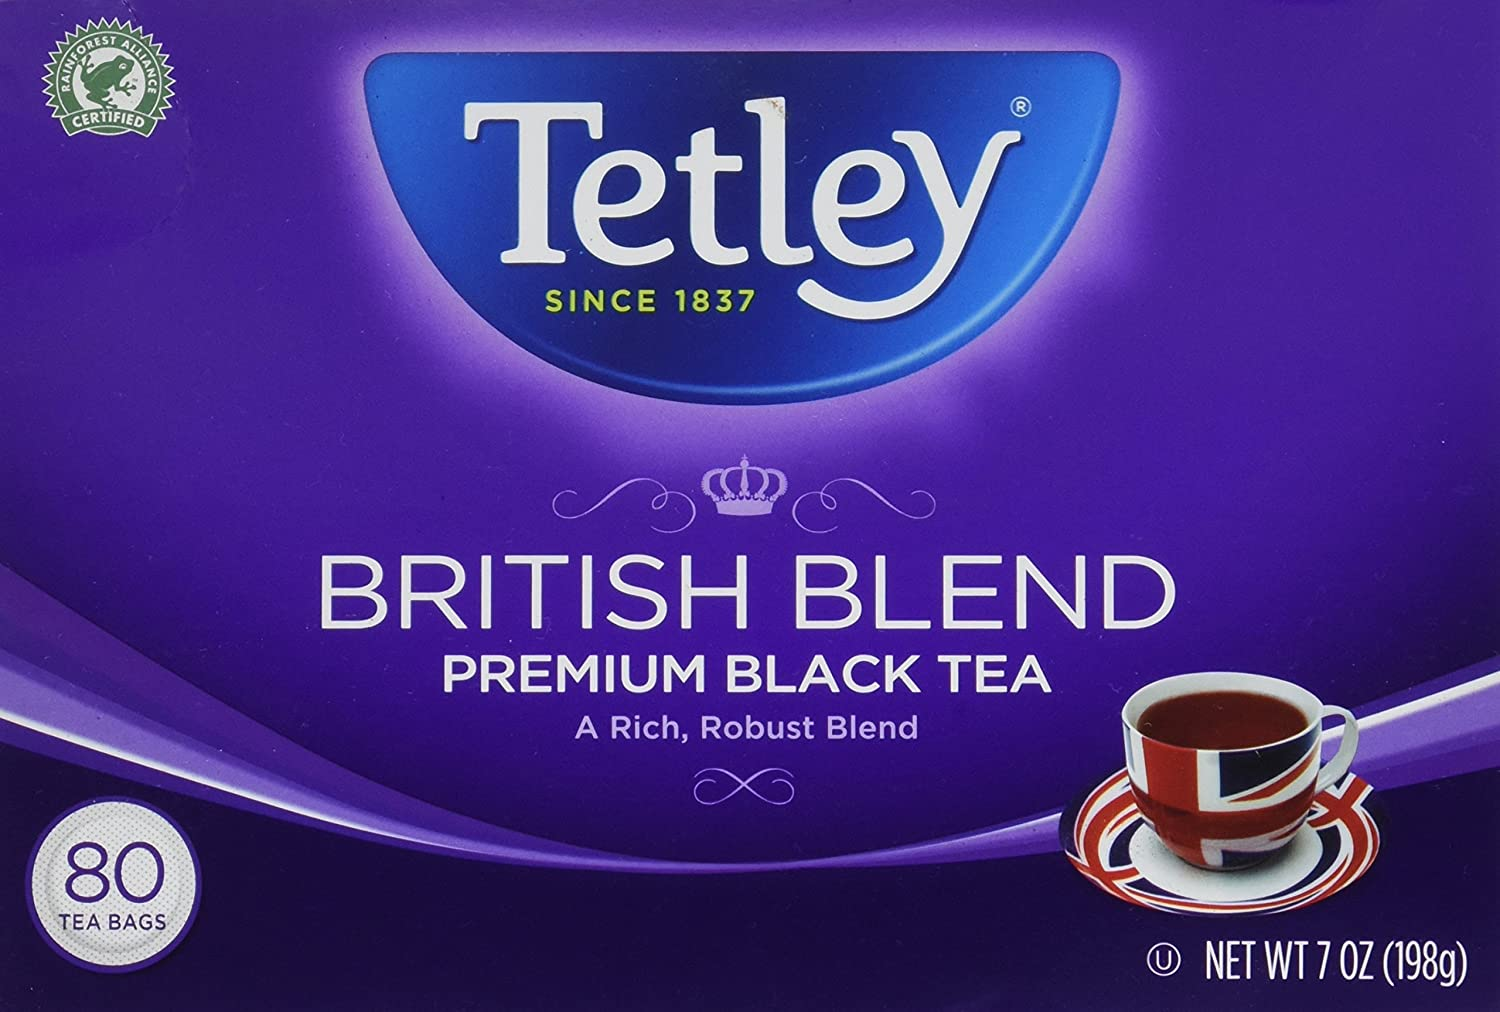 Tetley British Blend Premium Black, Tea Bags, 80 ct, 2 pk